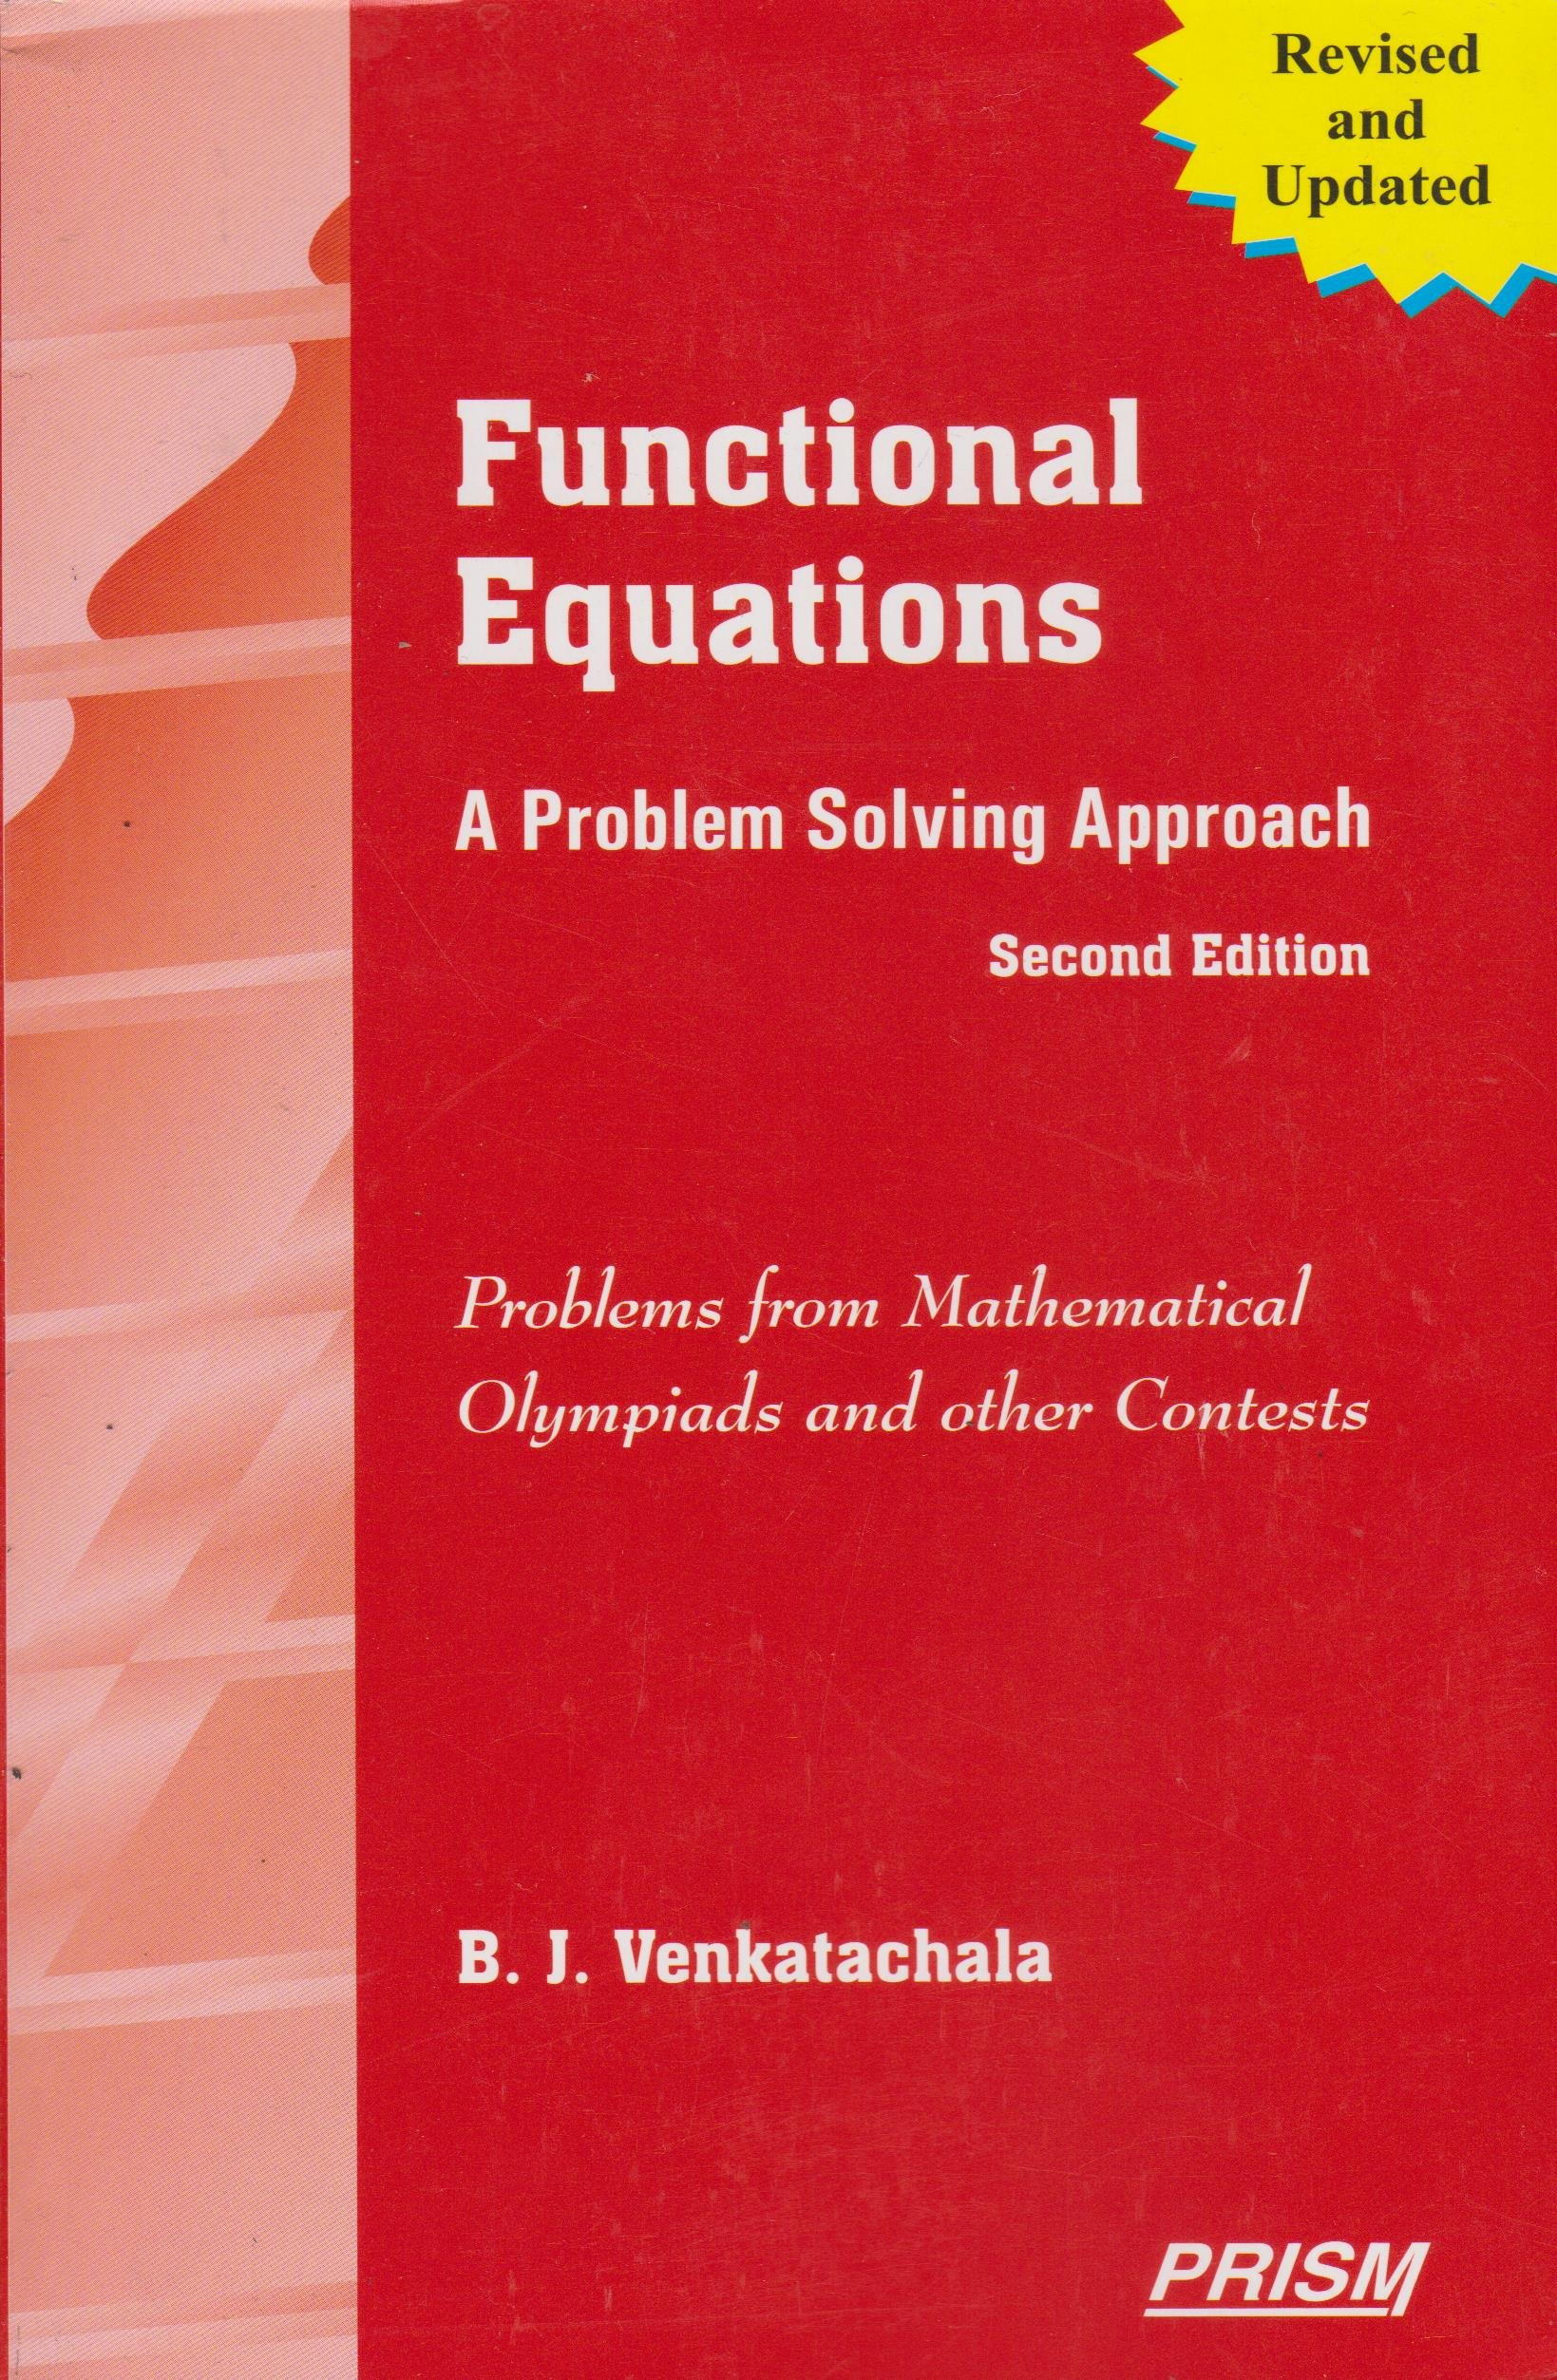 Amazon in: Buy Functional Equations Revised and Updated 2nd